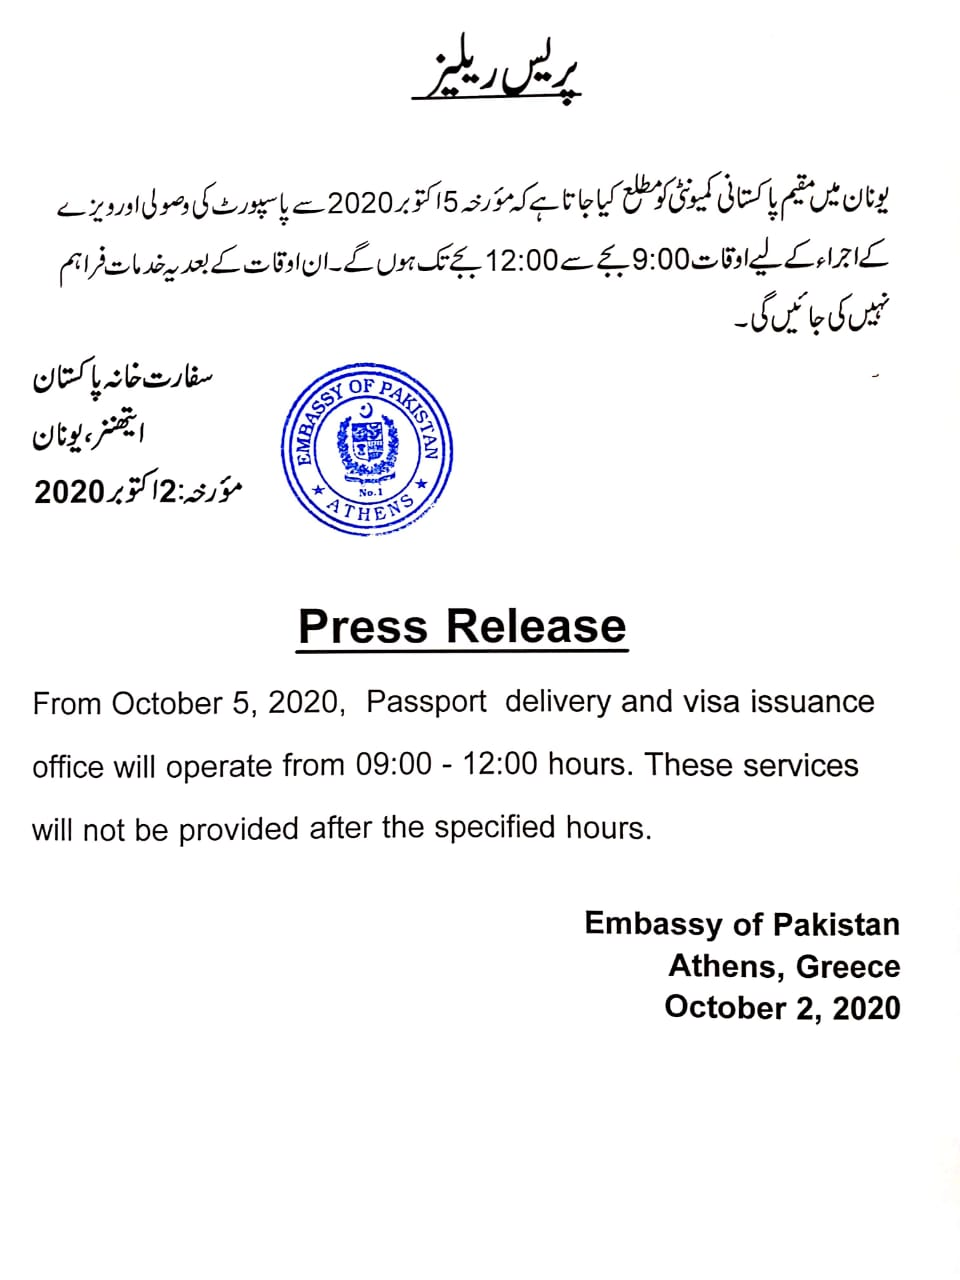 Press Release Passport delivery and Visa issuance timings